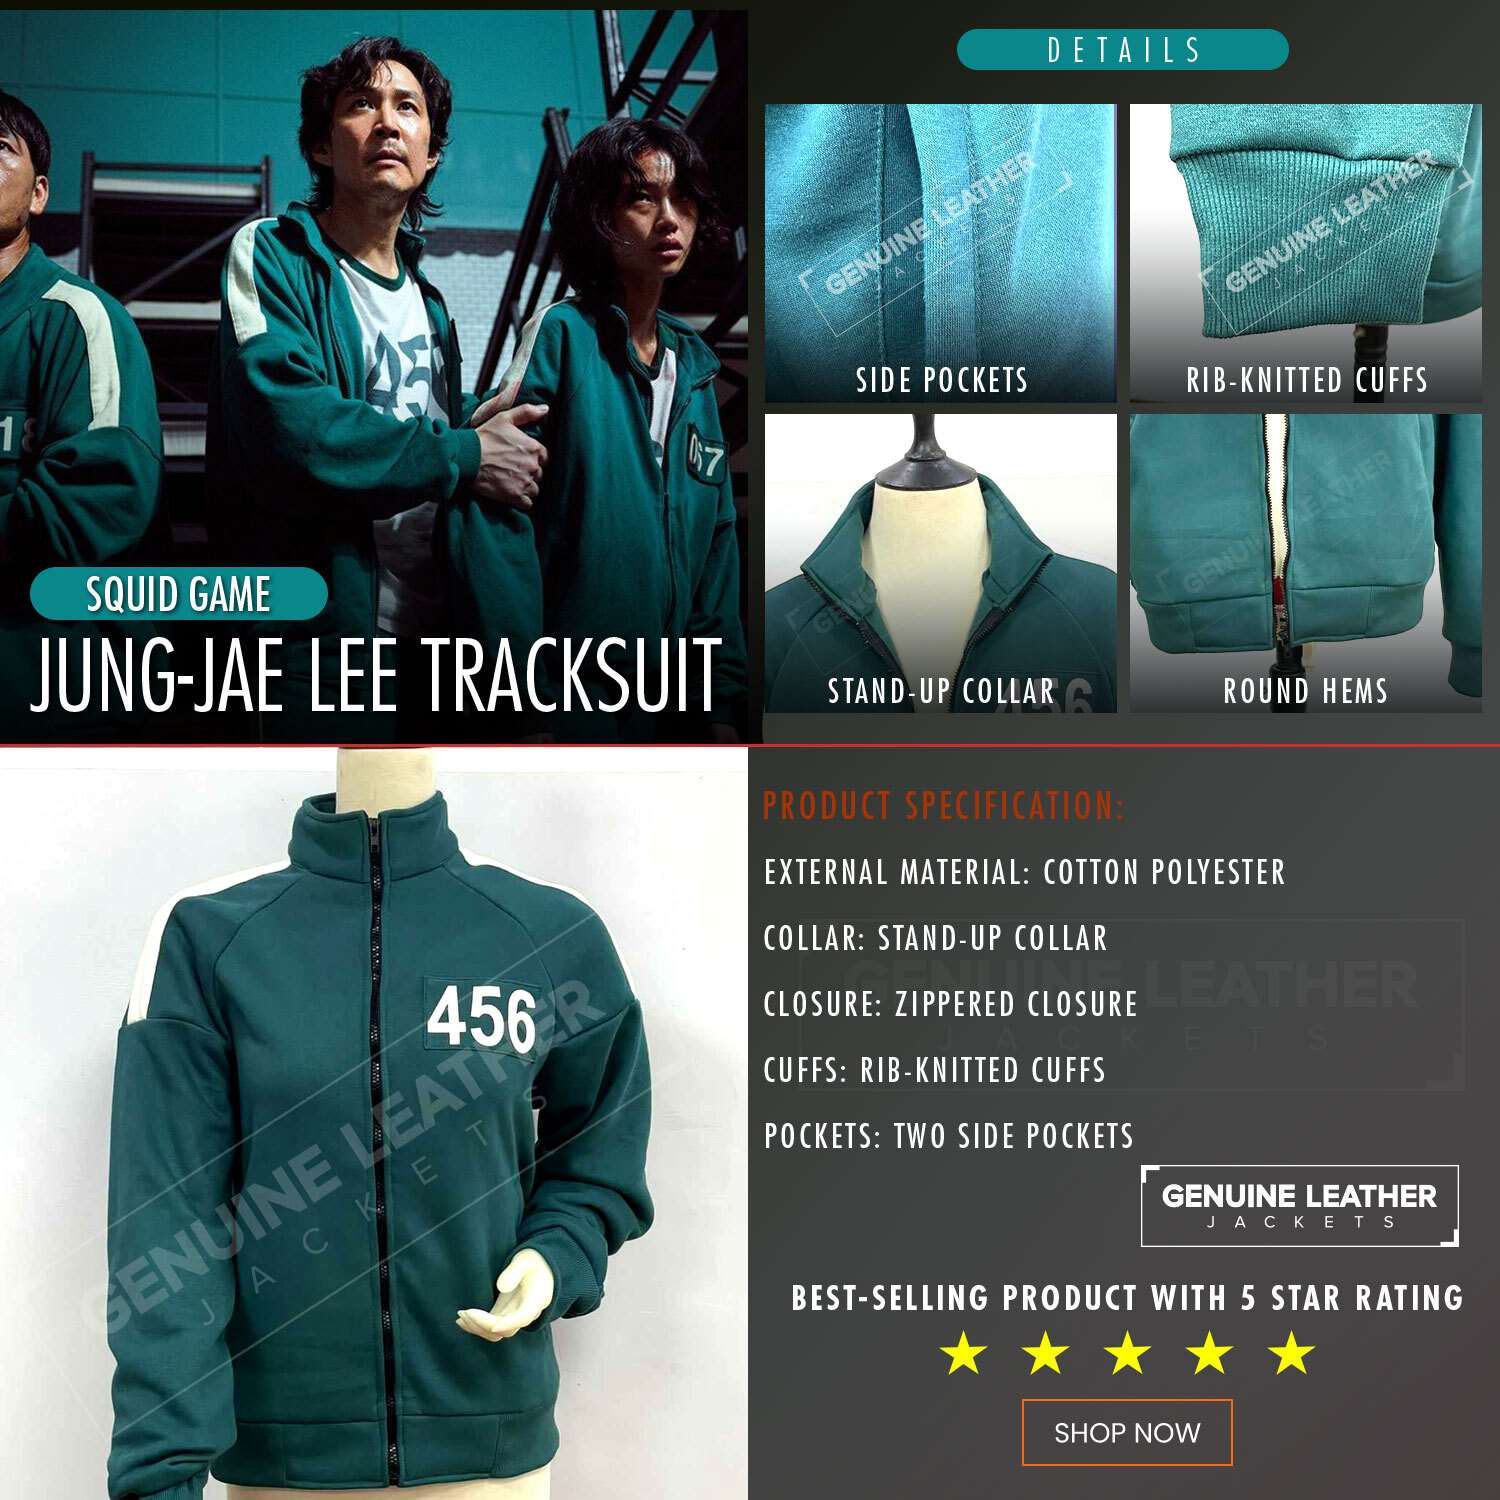 Squid Game Green Jacket 456